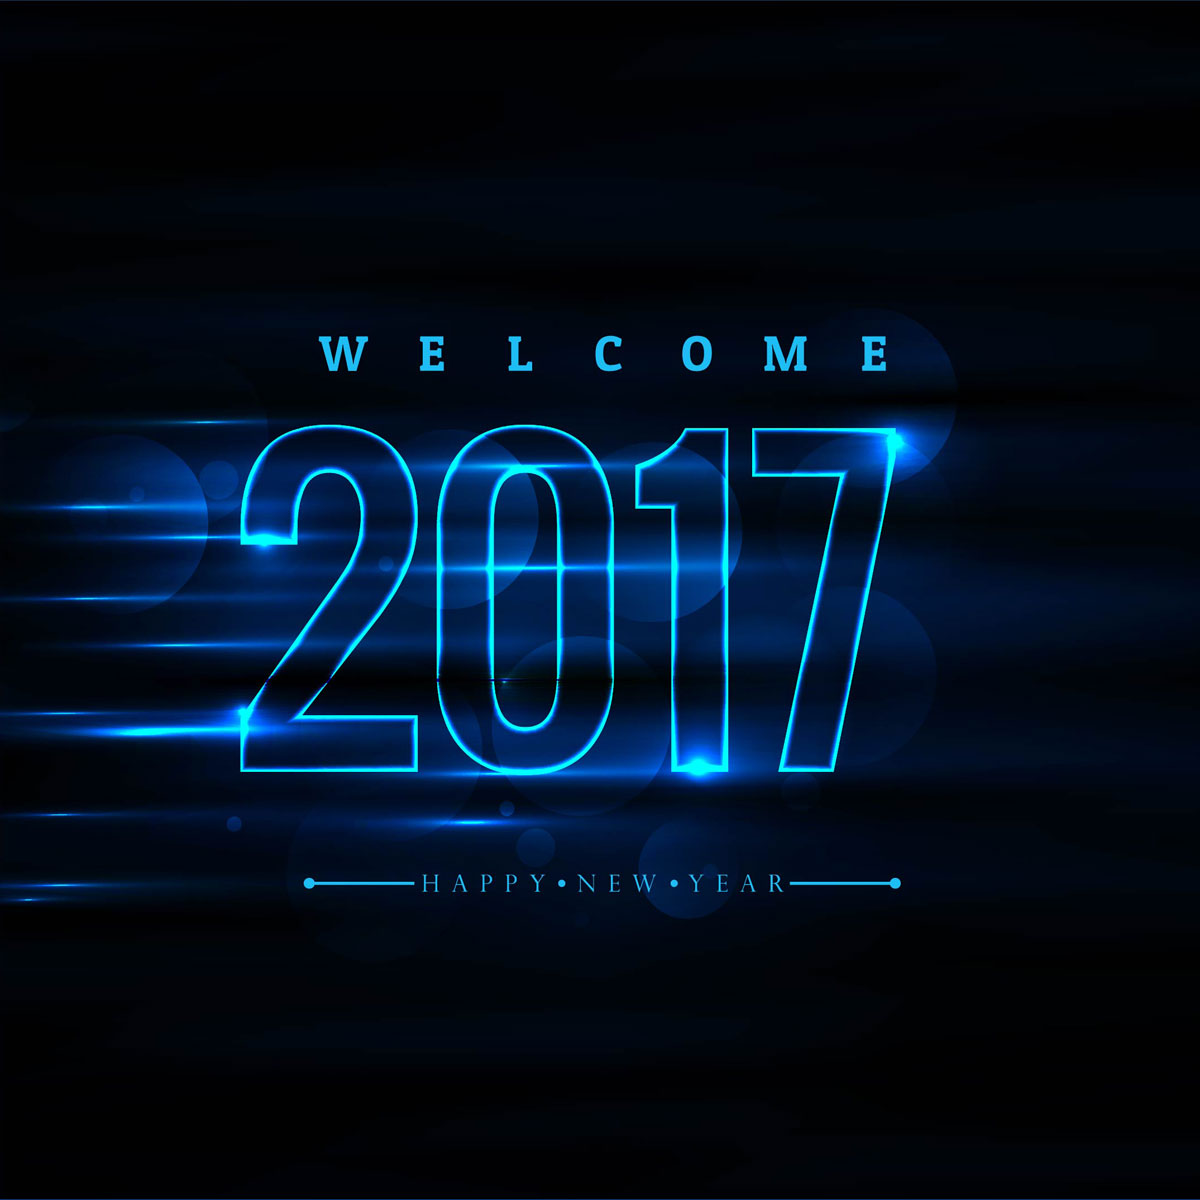 Best Happy New Year 2017 HD Images